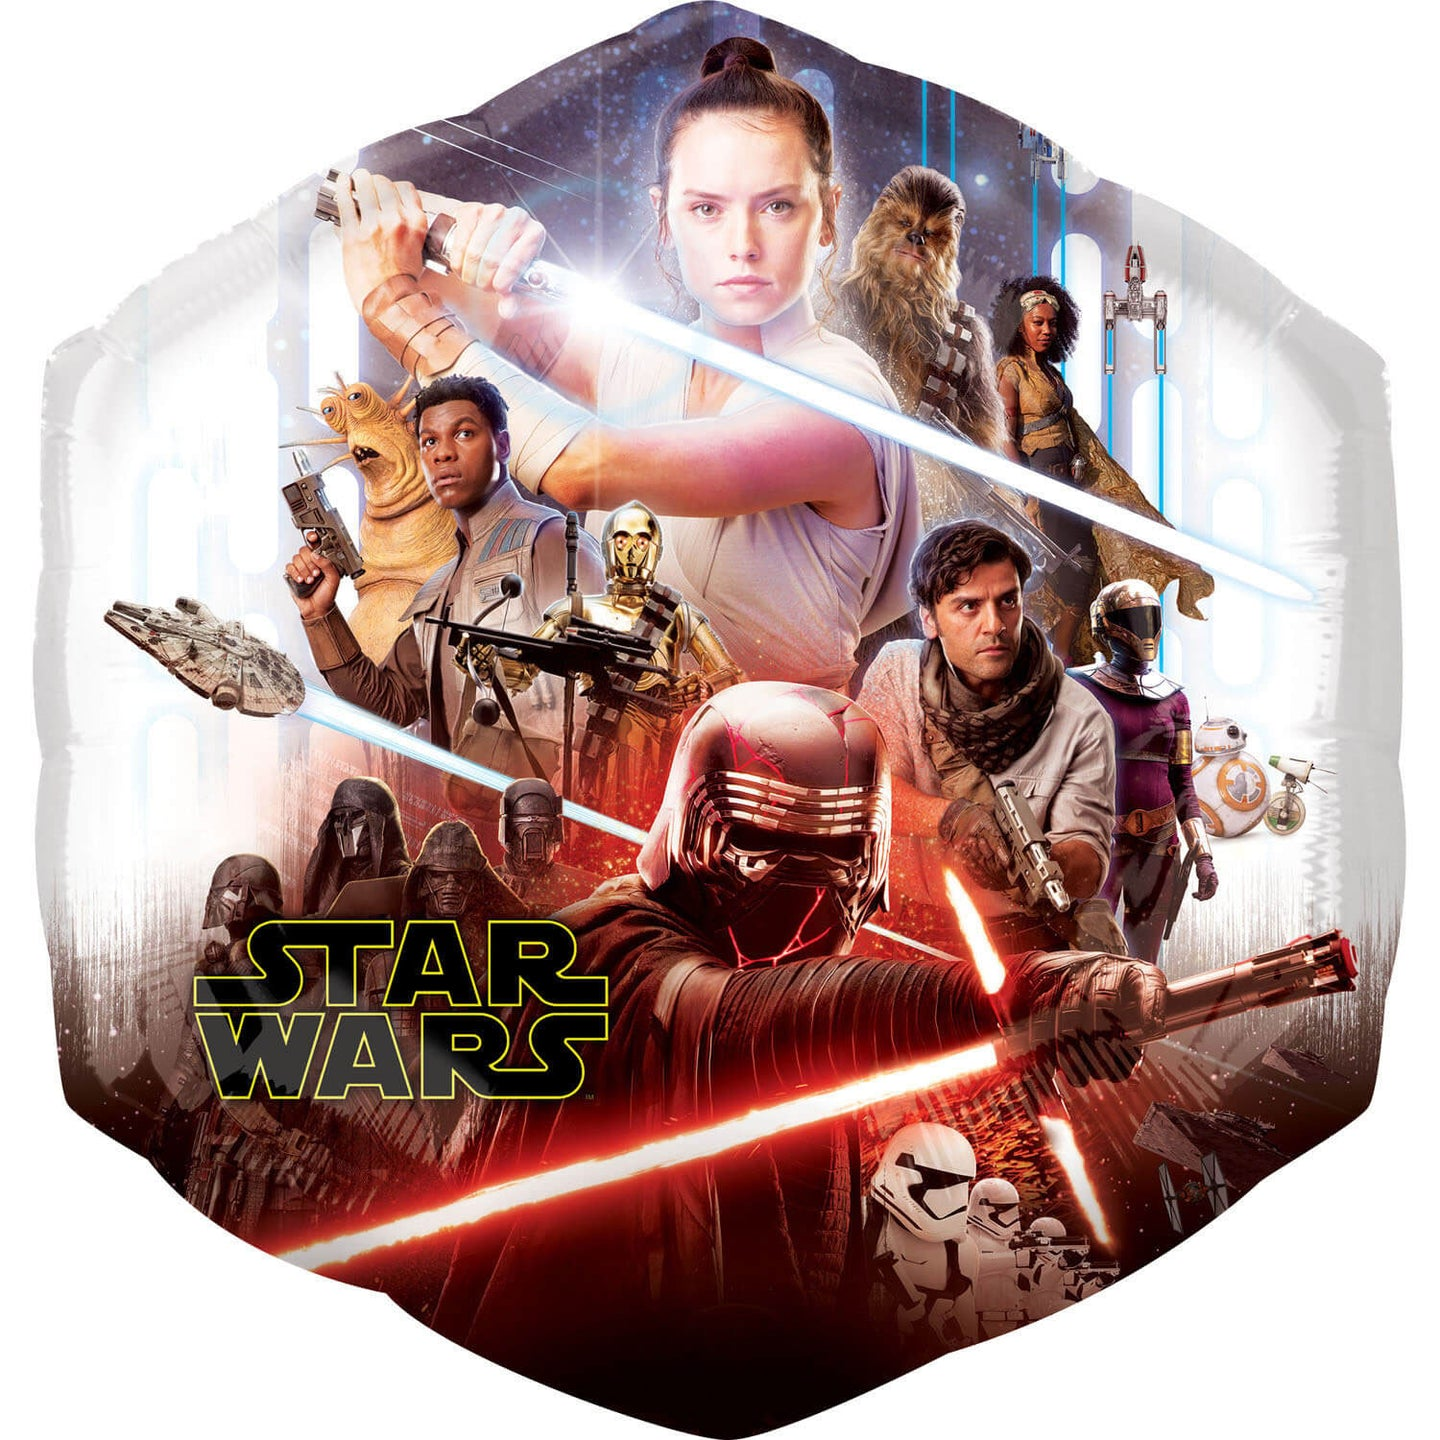 SuperShape Star Wars Episode IX Der Aufstieg Skywalkers Folienballon 55x58 cm